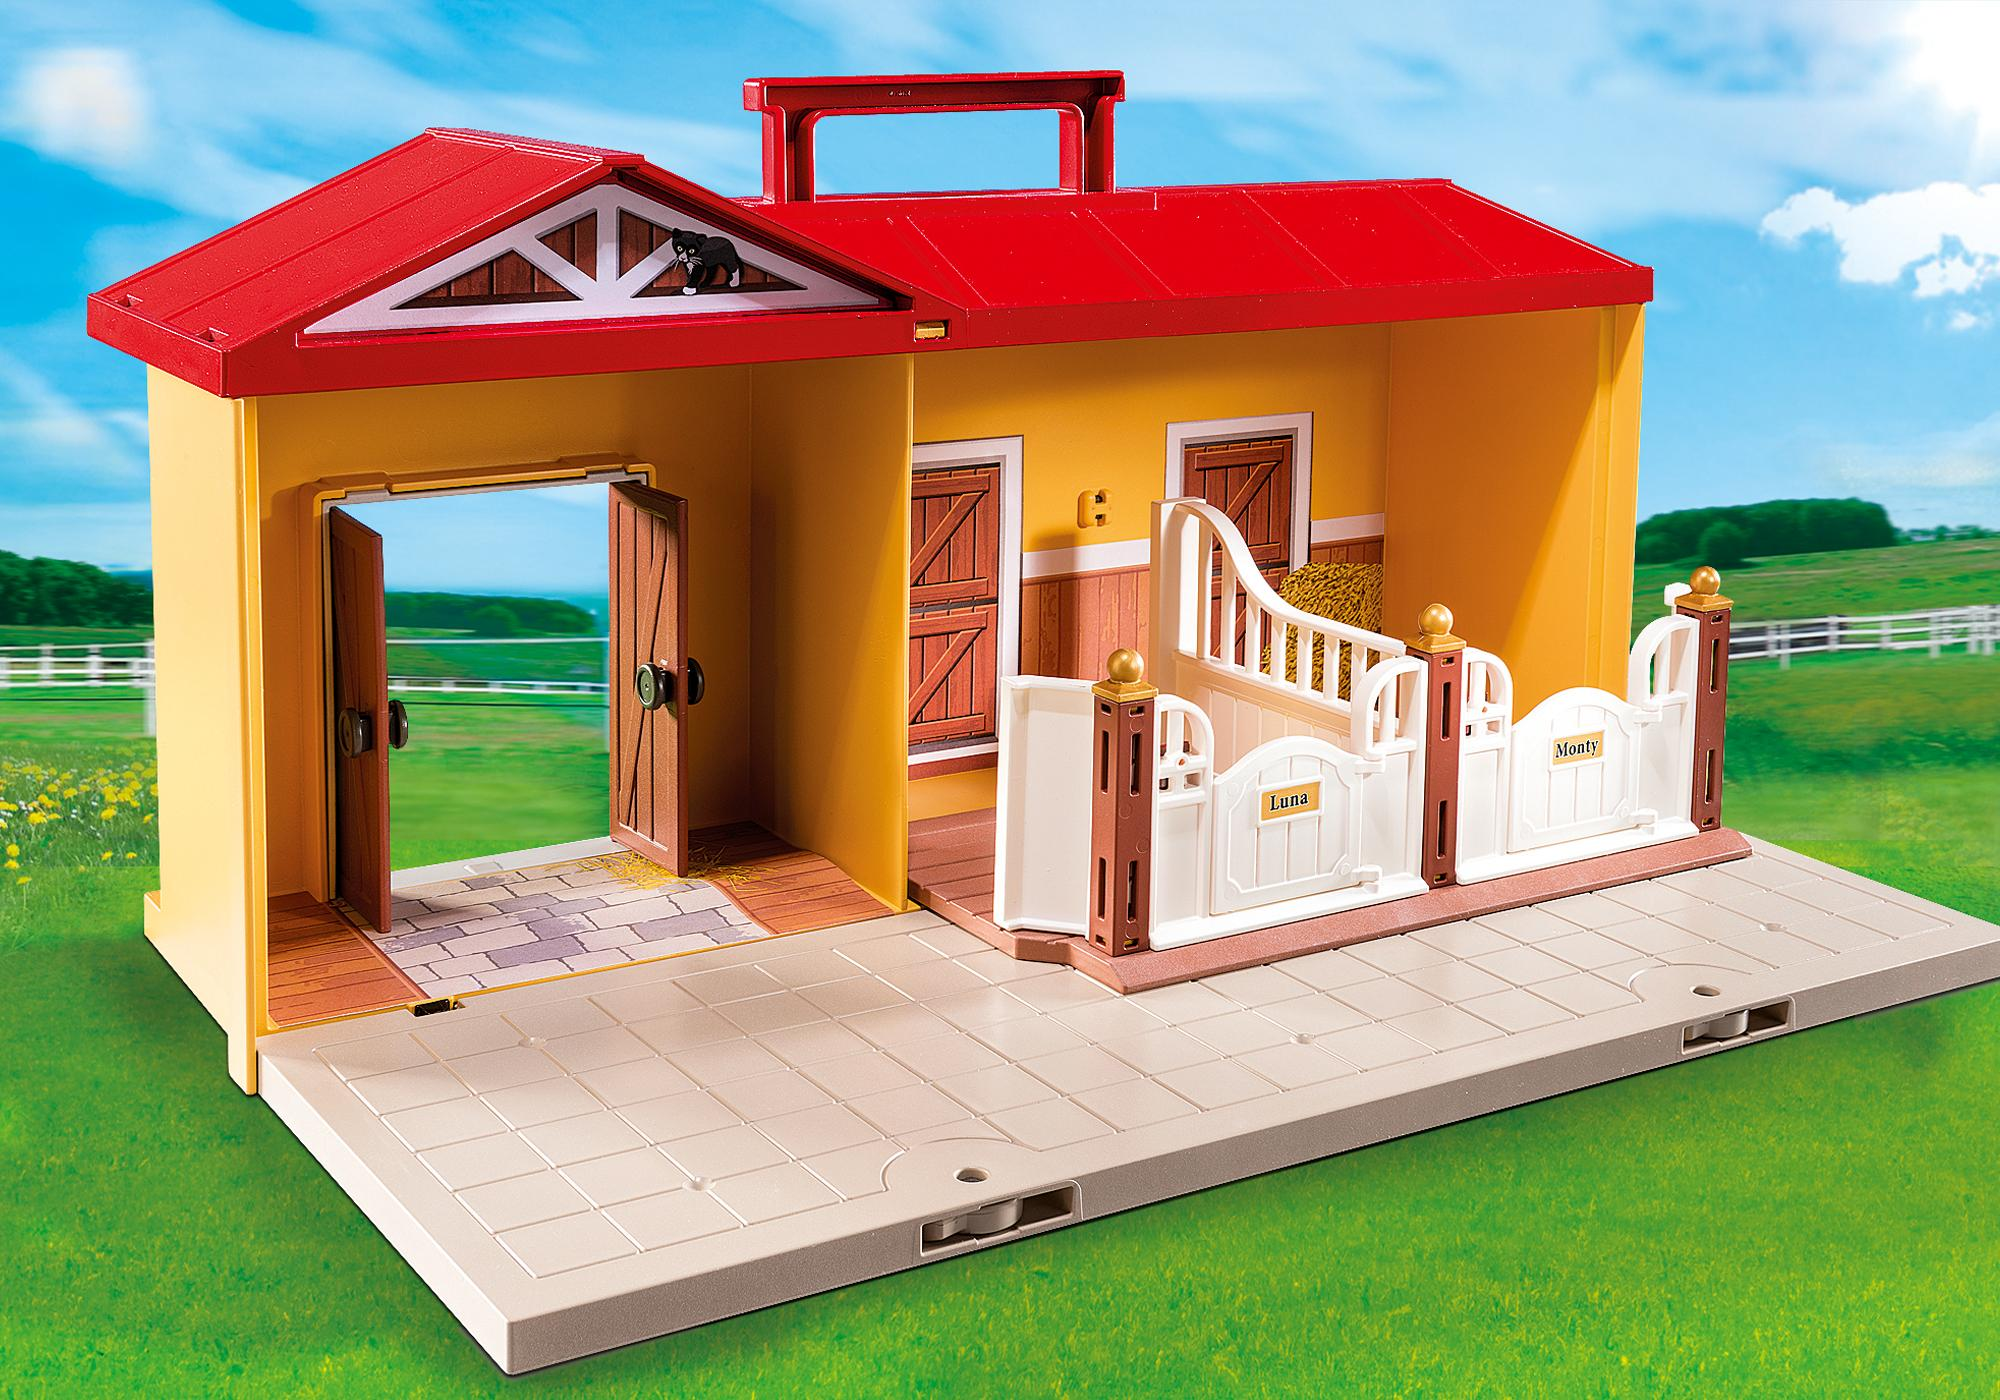 http://media.playmobil.com/i/playmobil/5671_product_extra1